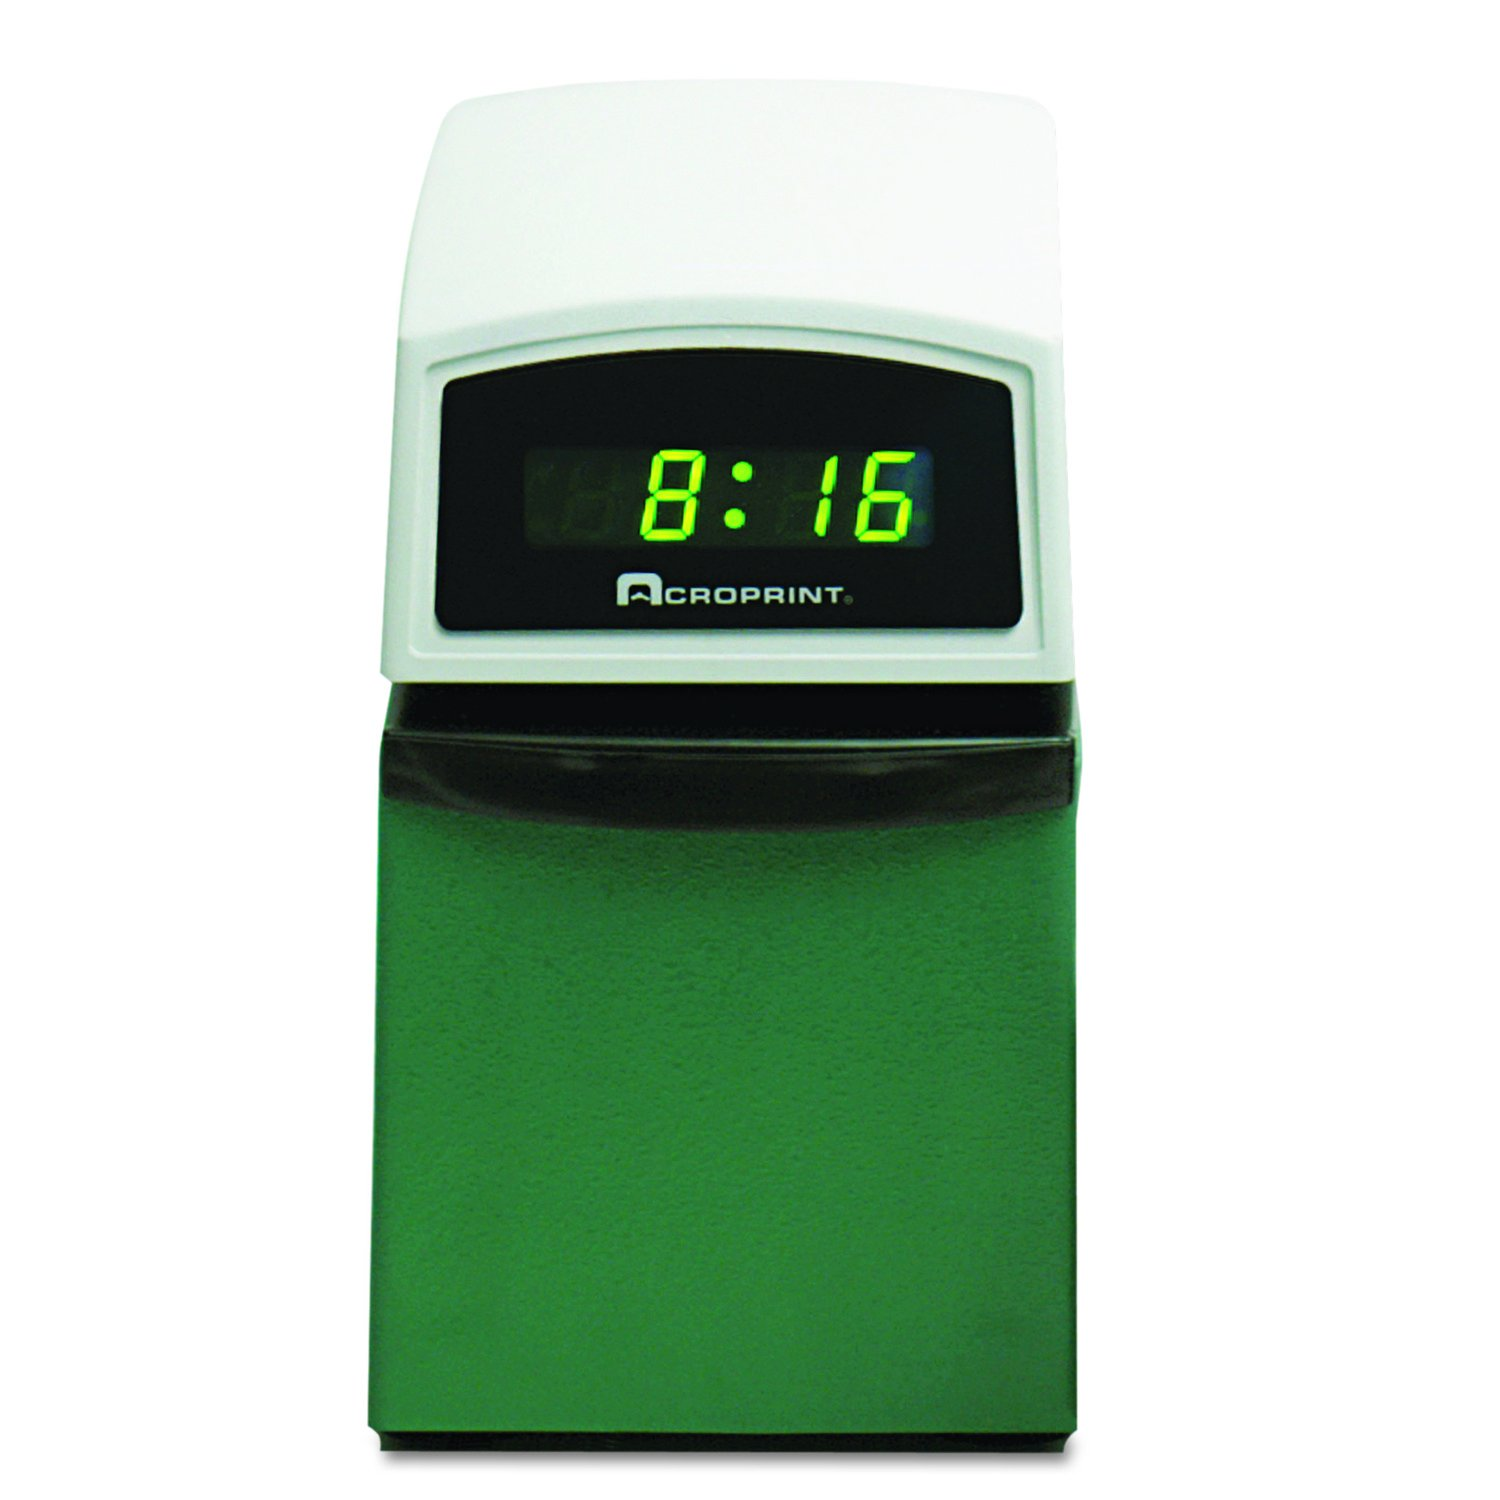 Acroprint ETC Heavy Duty Document Stamp with Digital Display Time Clock